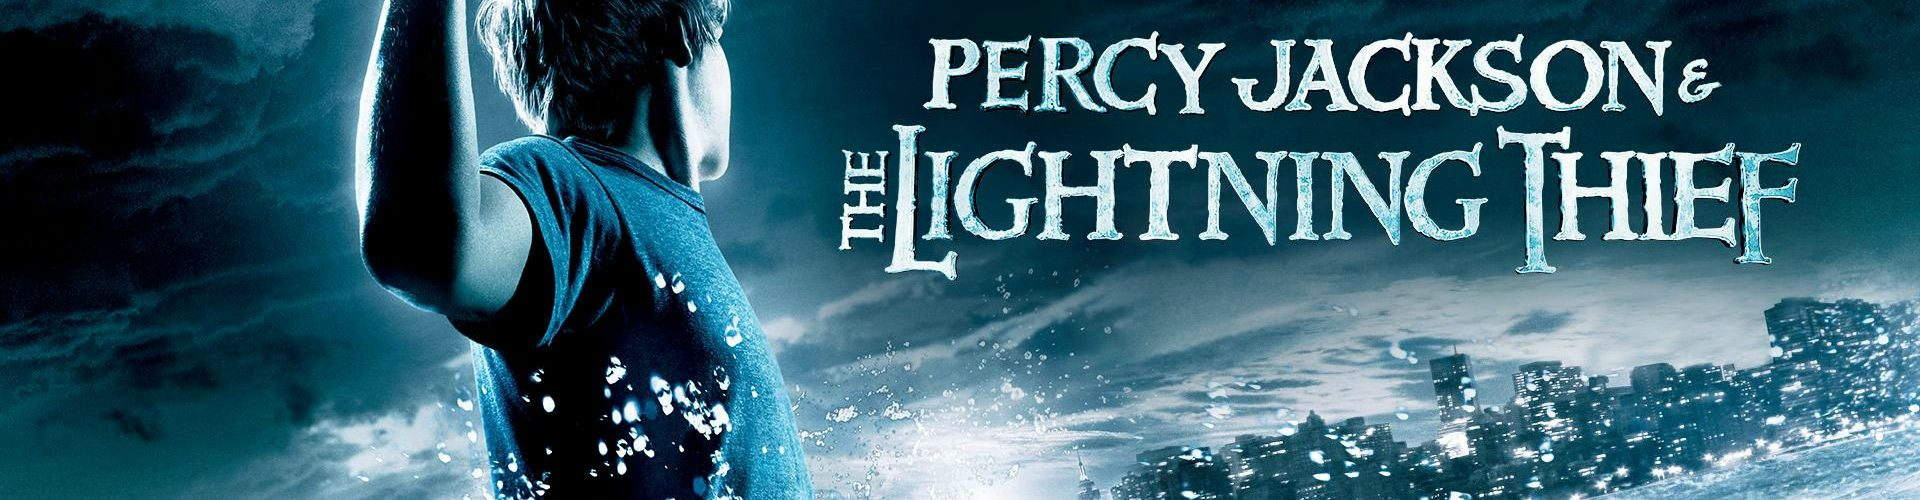 percy jackson and the lightning thief review